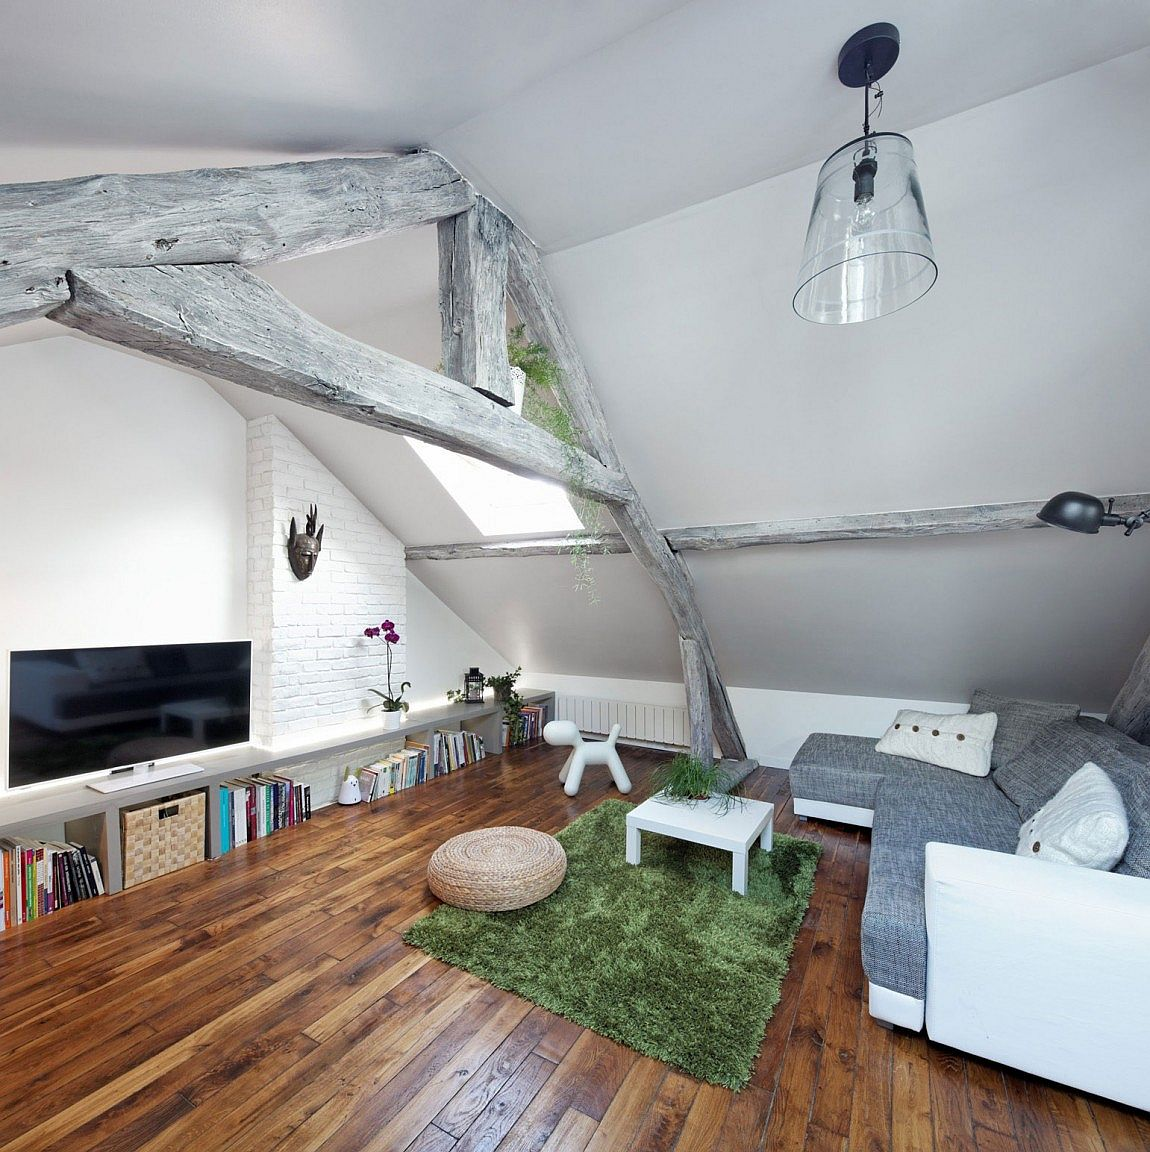 Rustic-modern attic apartment with living room in white